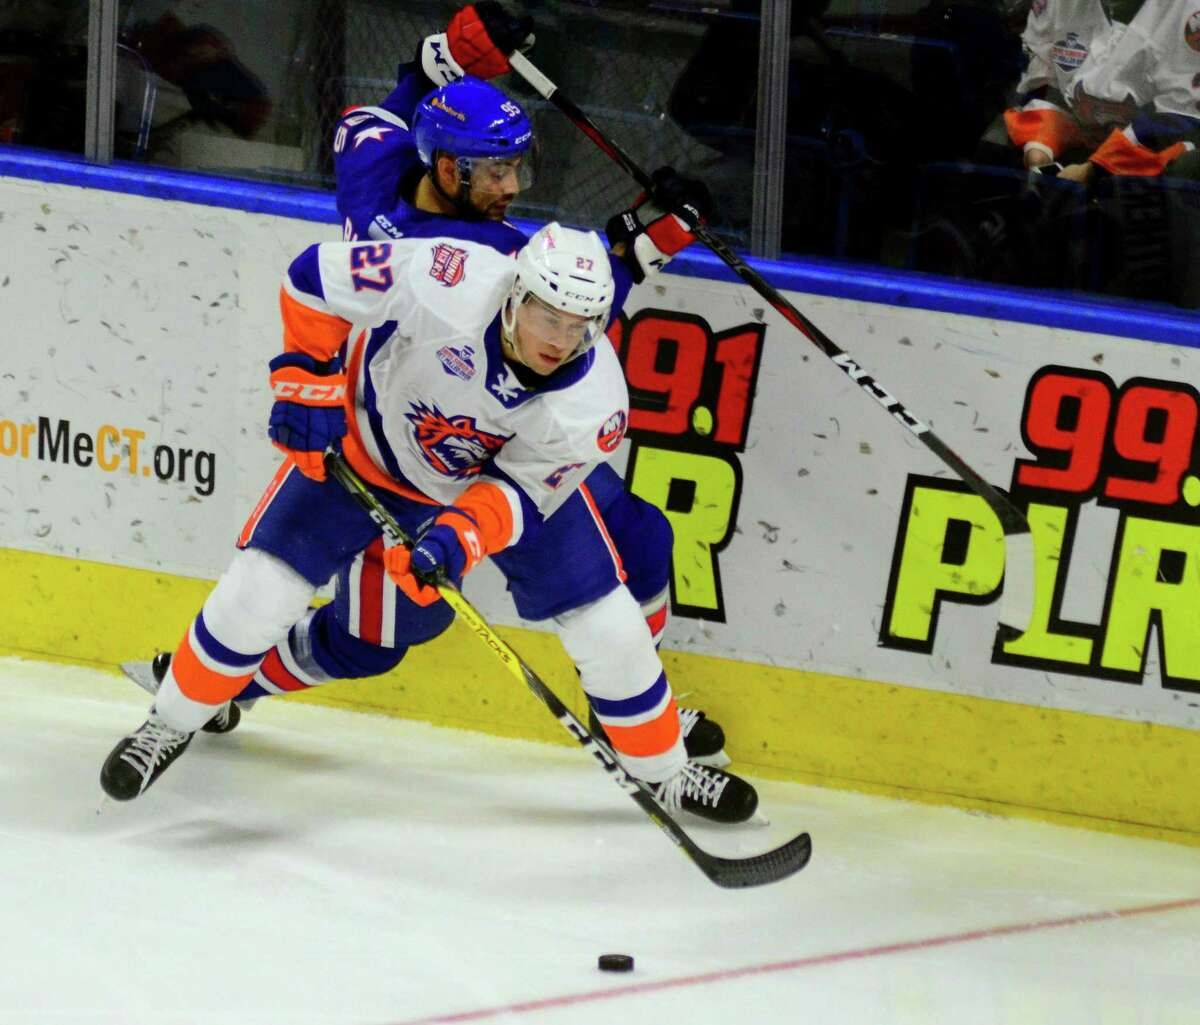 Spend the weekend with the Bridgeport Sound Tigers as they take on the Springfield Thunderbirds on Saturday and the Wilkes-Barre/ScrantonPenguins on Sunday, at home. Find out more.